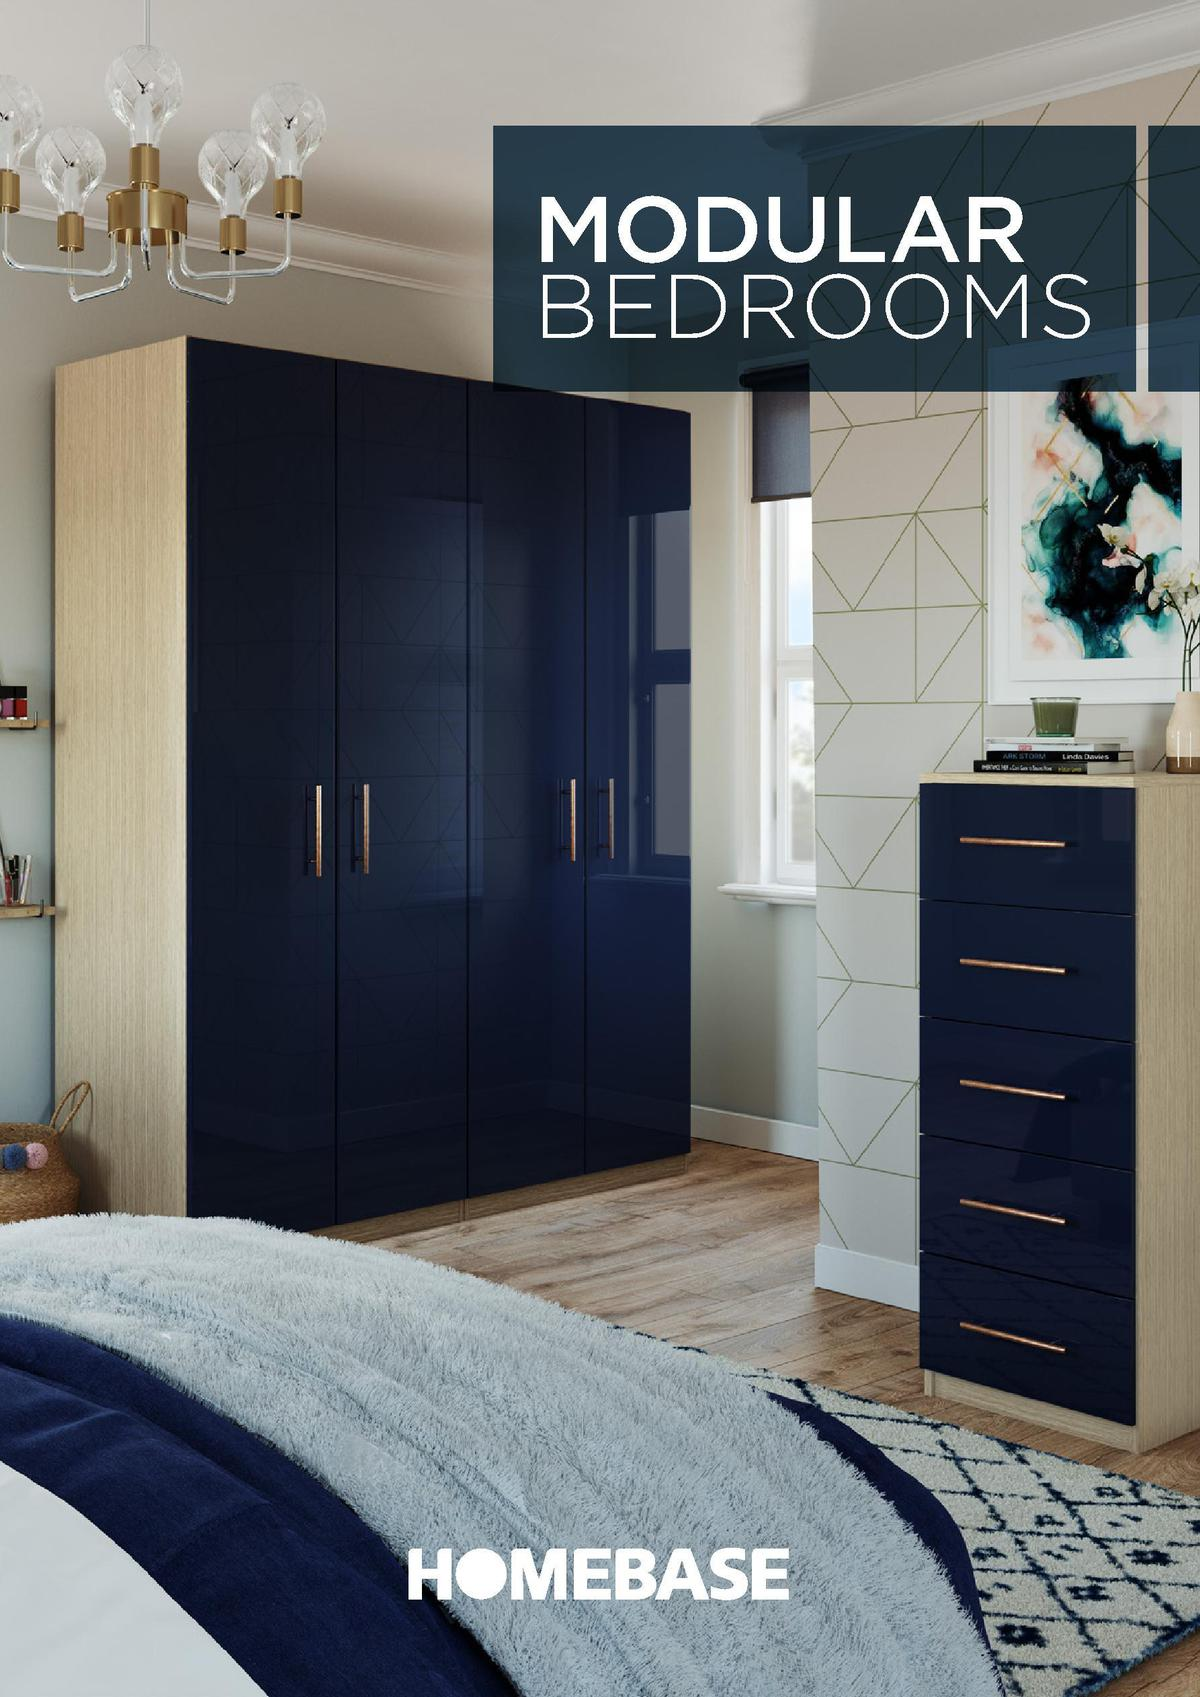 Homebase Modular Bedrooms Offers from August 1